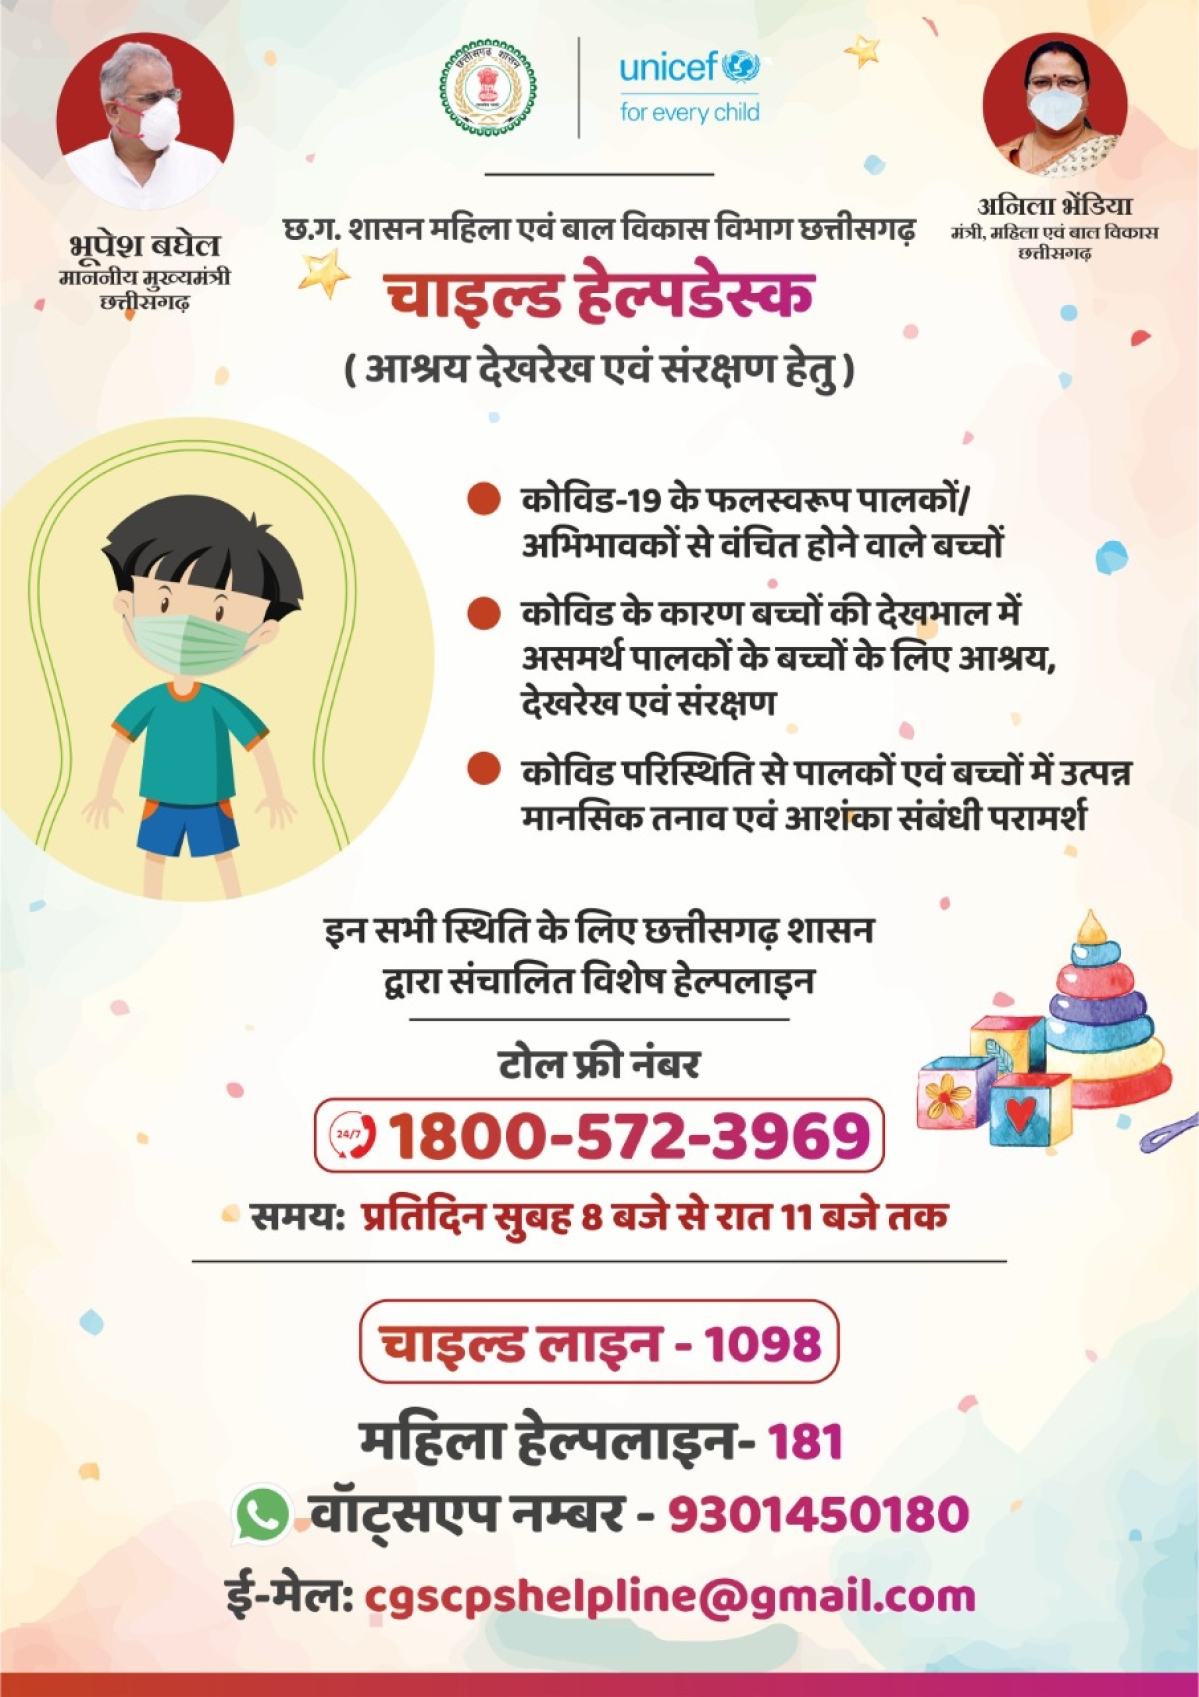 Chhattisgarh govt and UNICEF jointly launch helpdesk for COVID-19 stricken children - Check out helpline number here